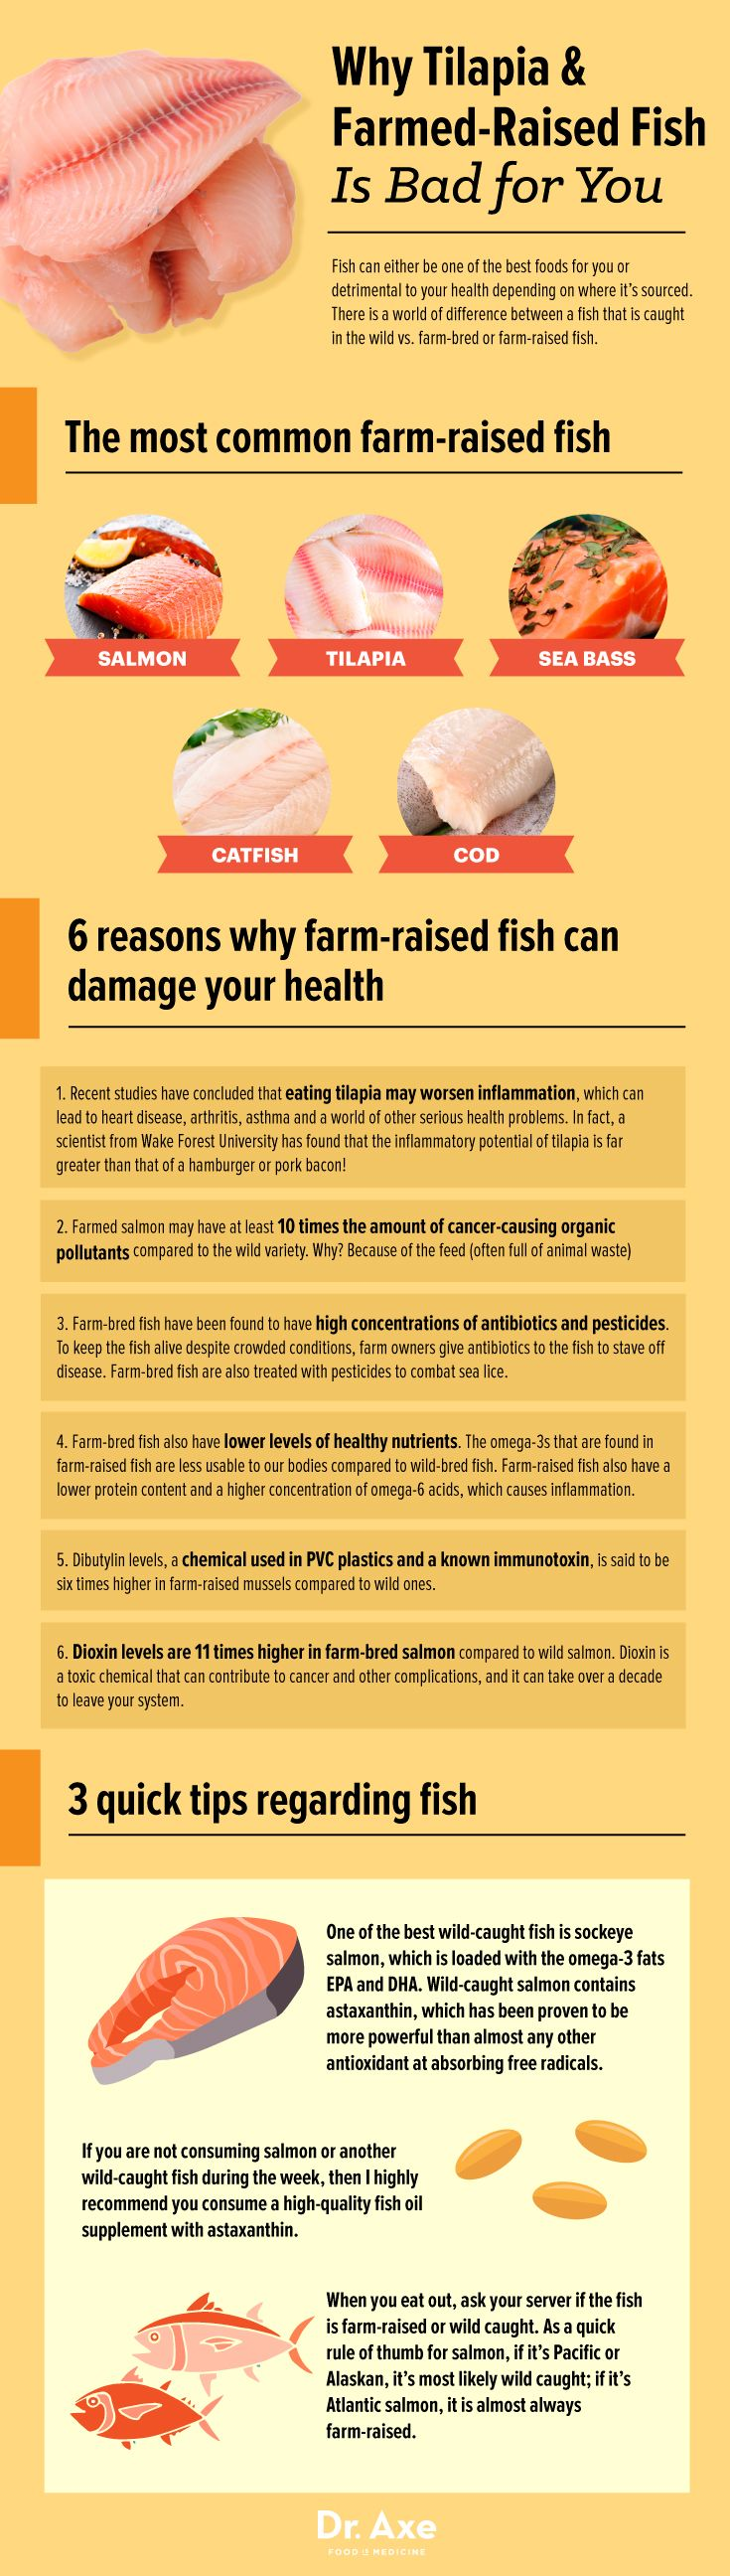 Best 25 fish information ideas on pinterest fish fish for Why fish is bad for you